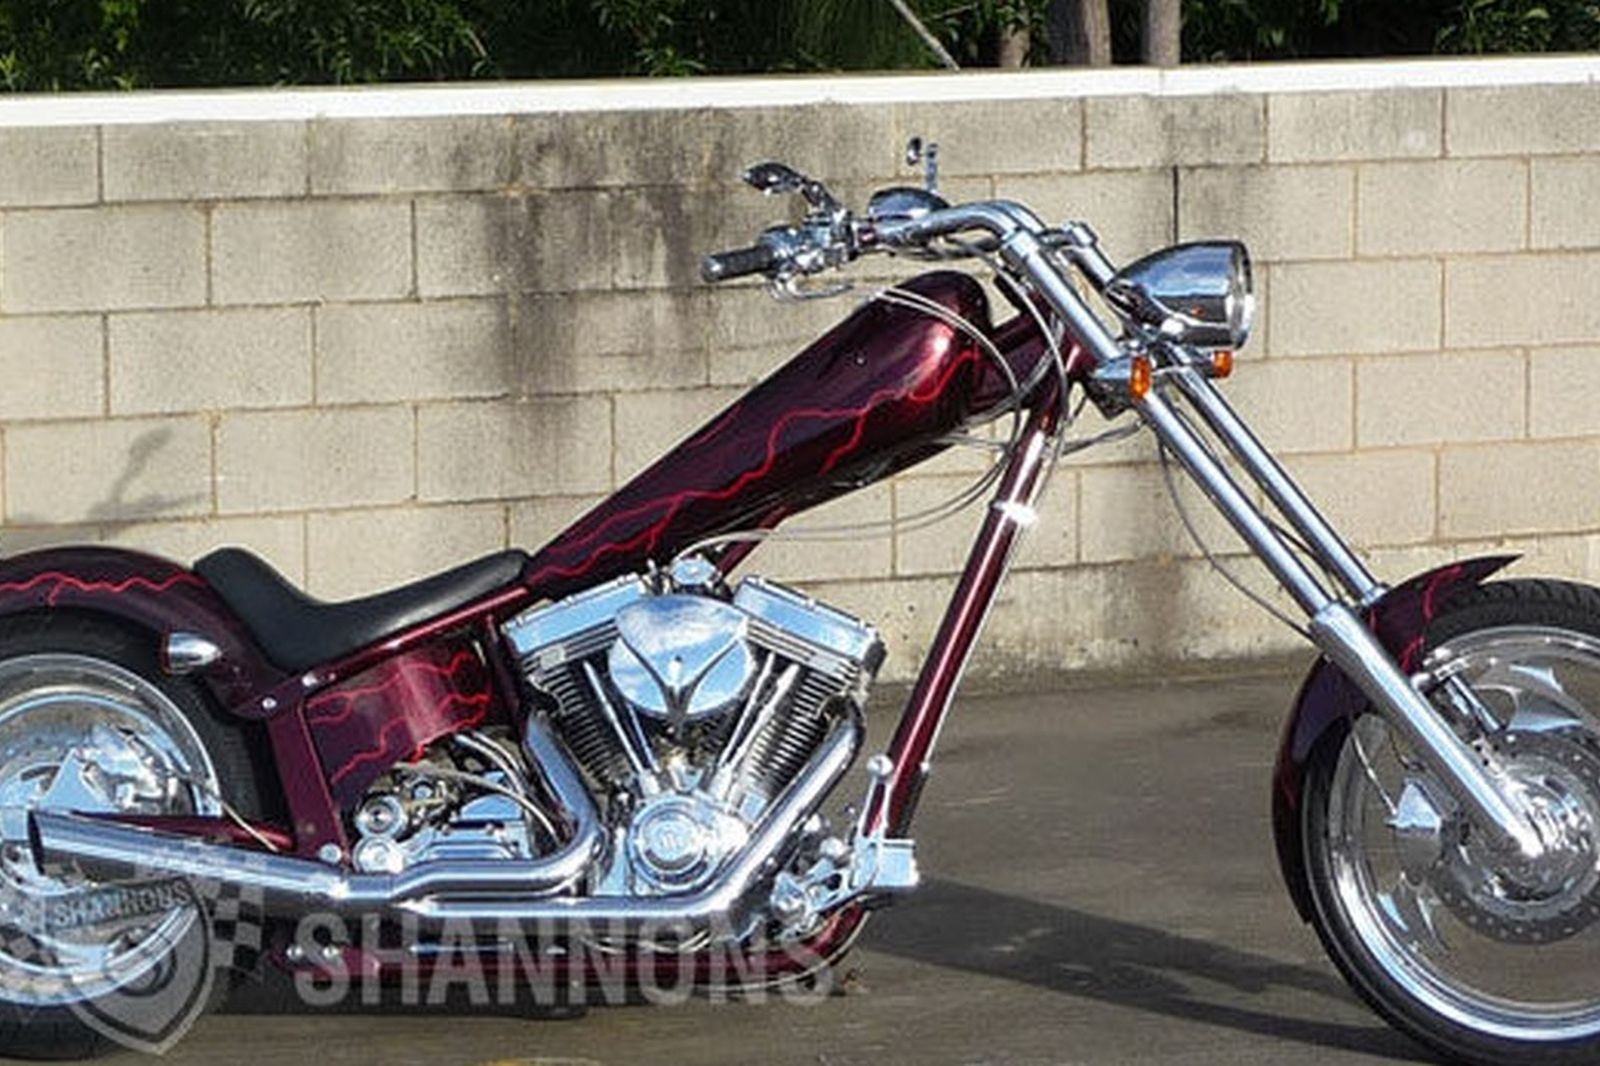 American Iron Horse Texas Chopper M/Cycle Auctions - Lot 11